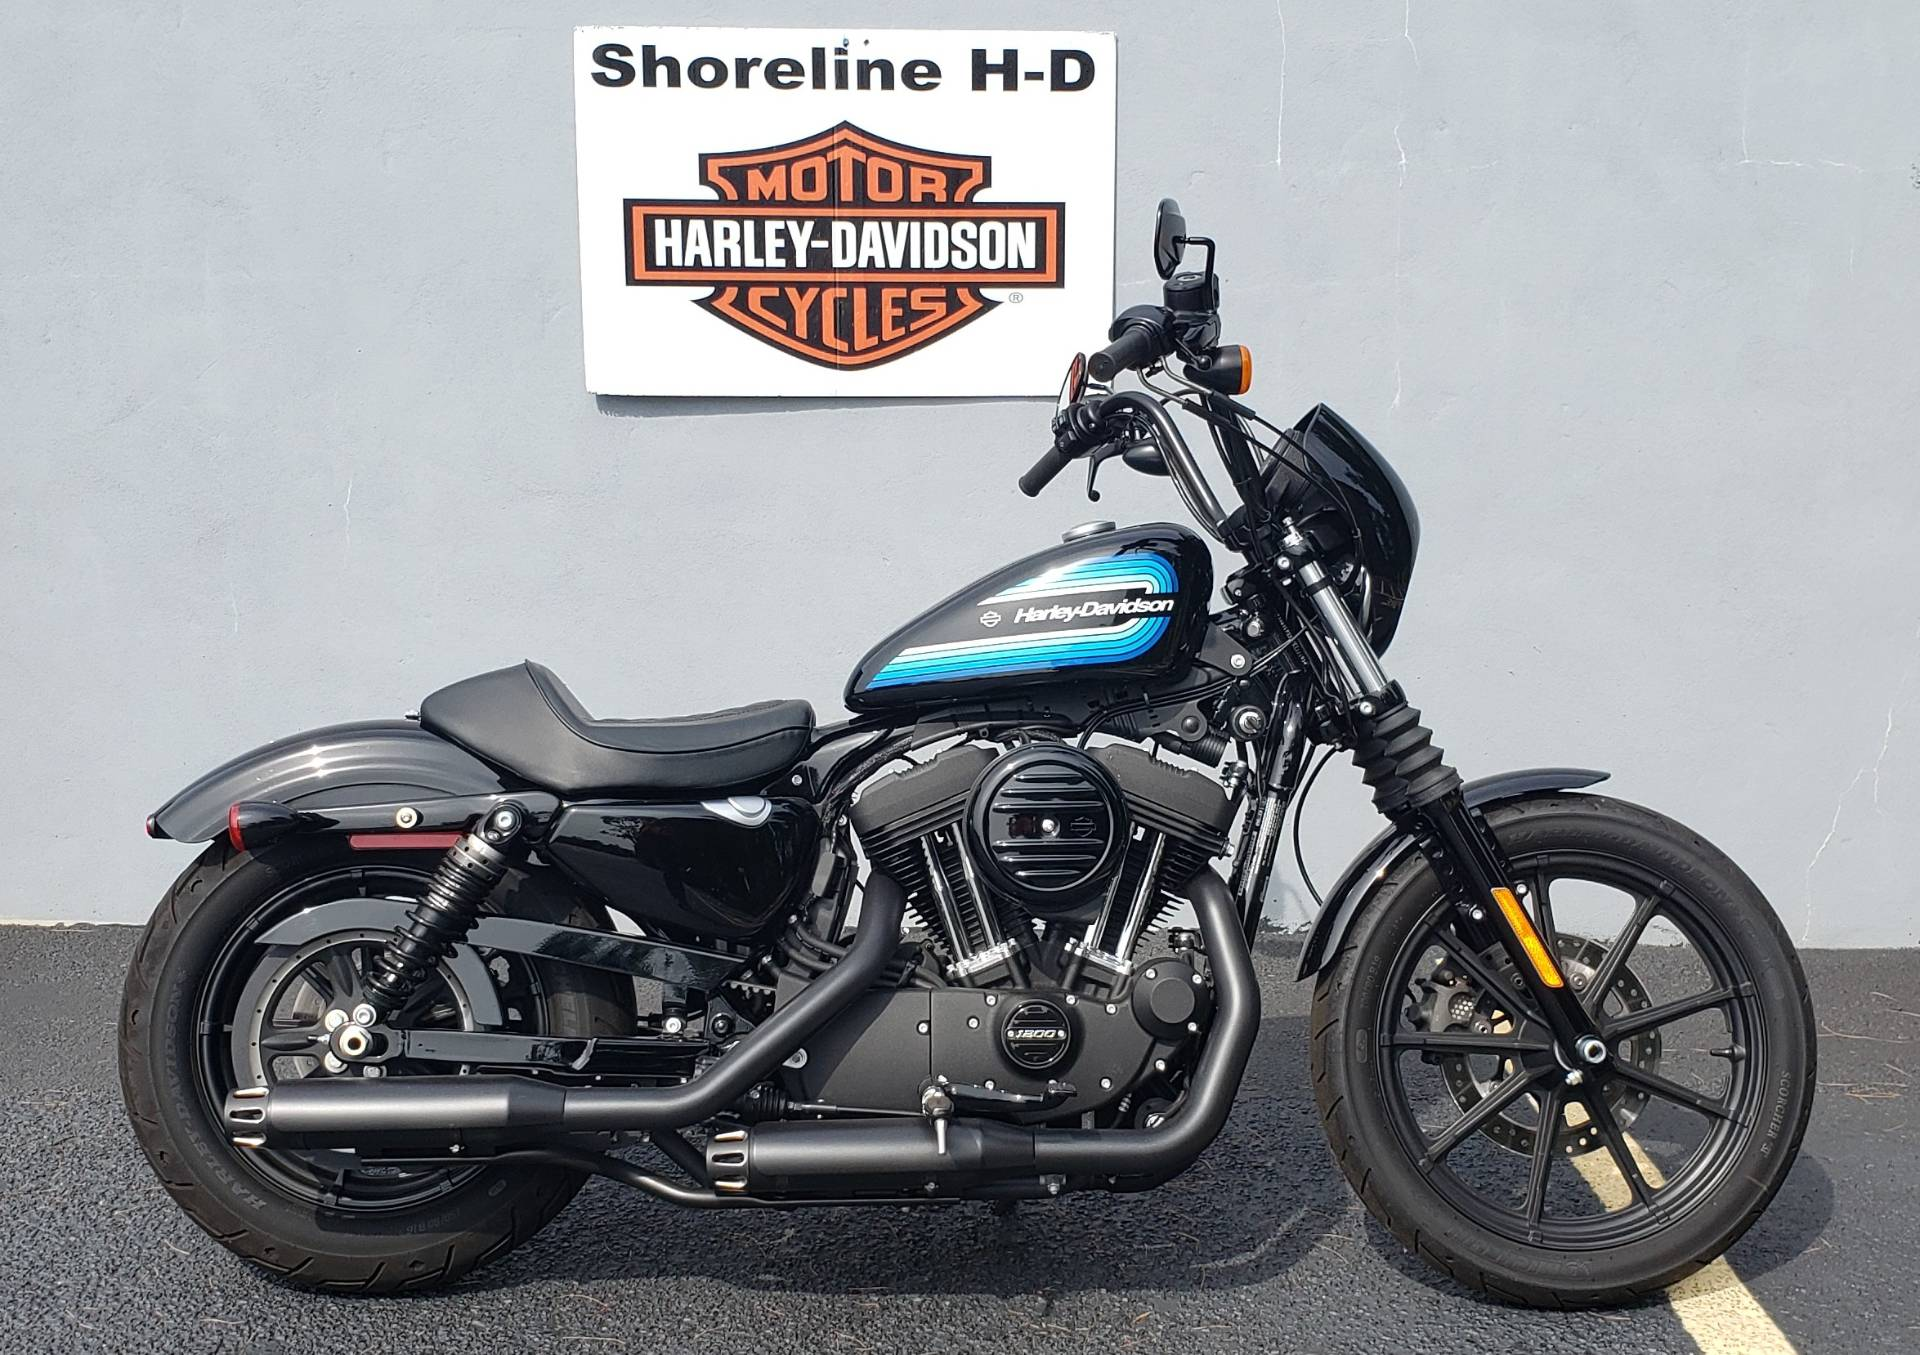 2018 Harley-Davidson Iron 1200 in West Long Branch, New Jersey - Photo 1